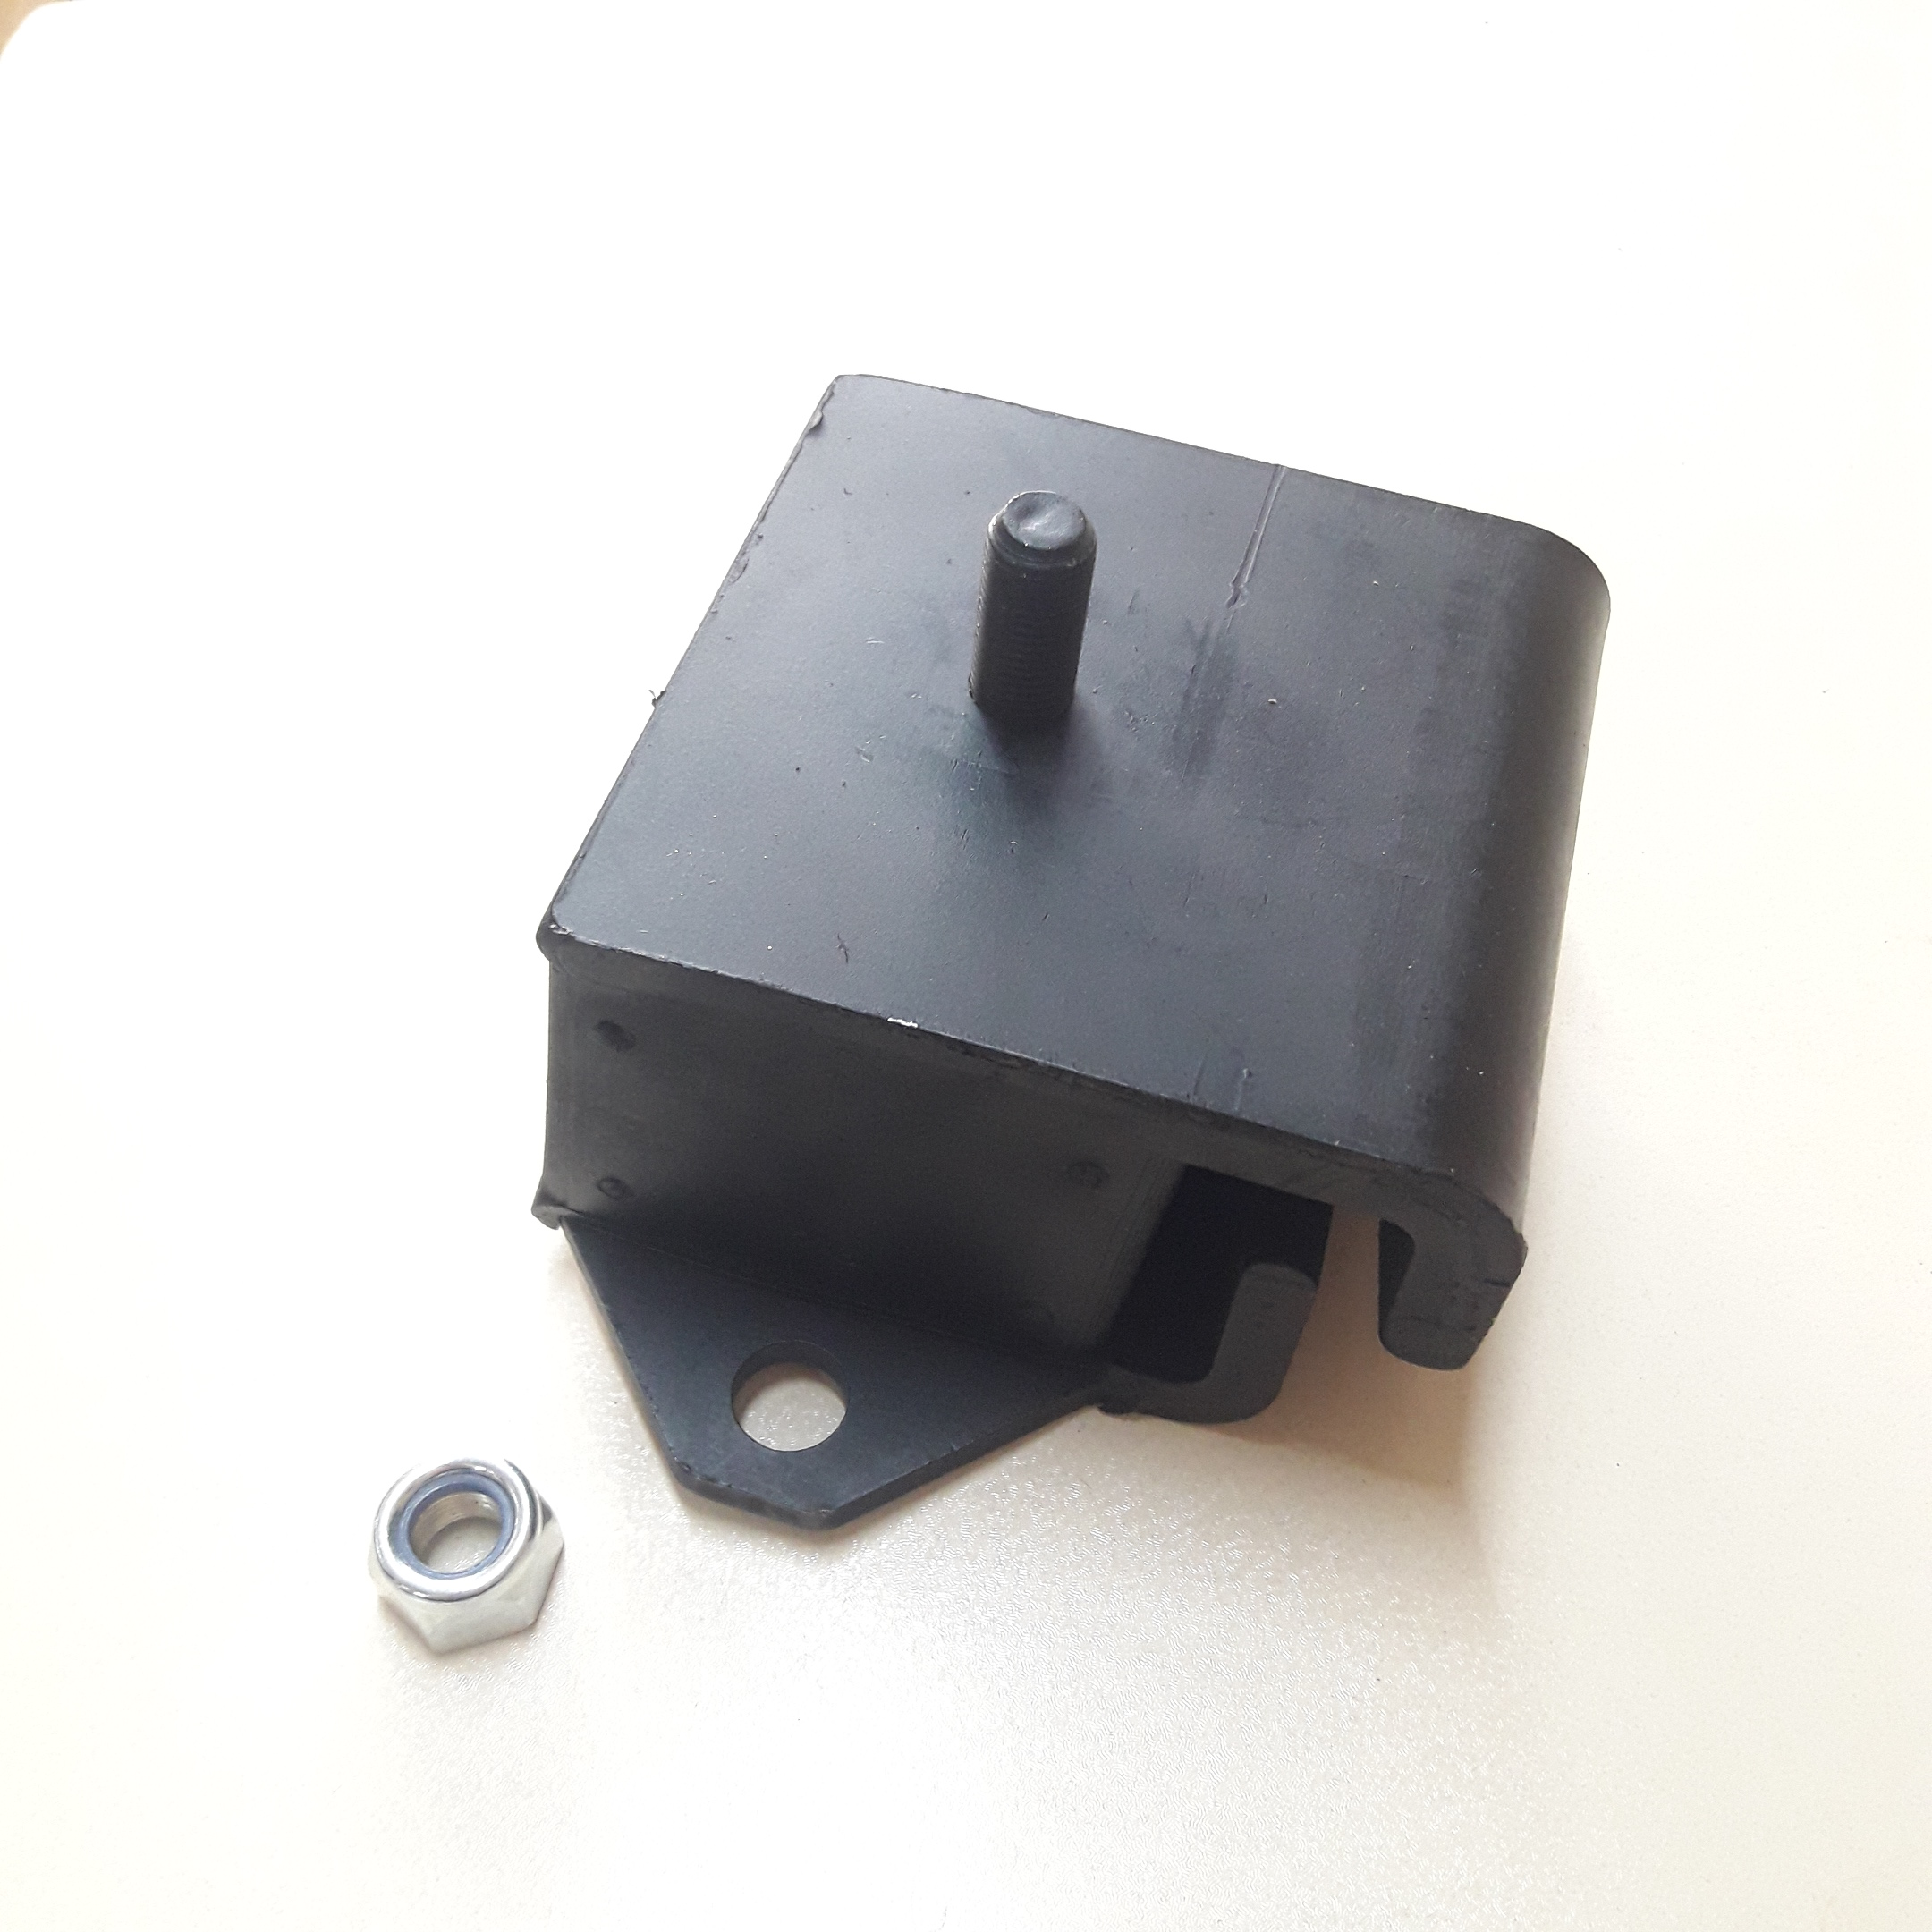 1 Pc Front Engine Foot Mount Rubber for Isuzu FSR FRR Citibus 1532151840 1 53215184 0  Free TNT Express Shipping|Motor Mounts| |  - title=